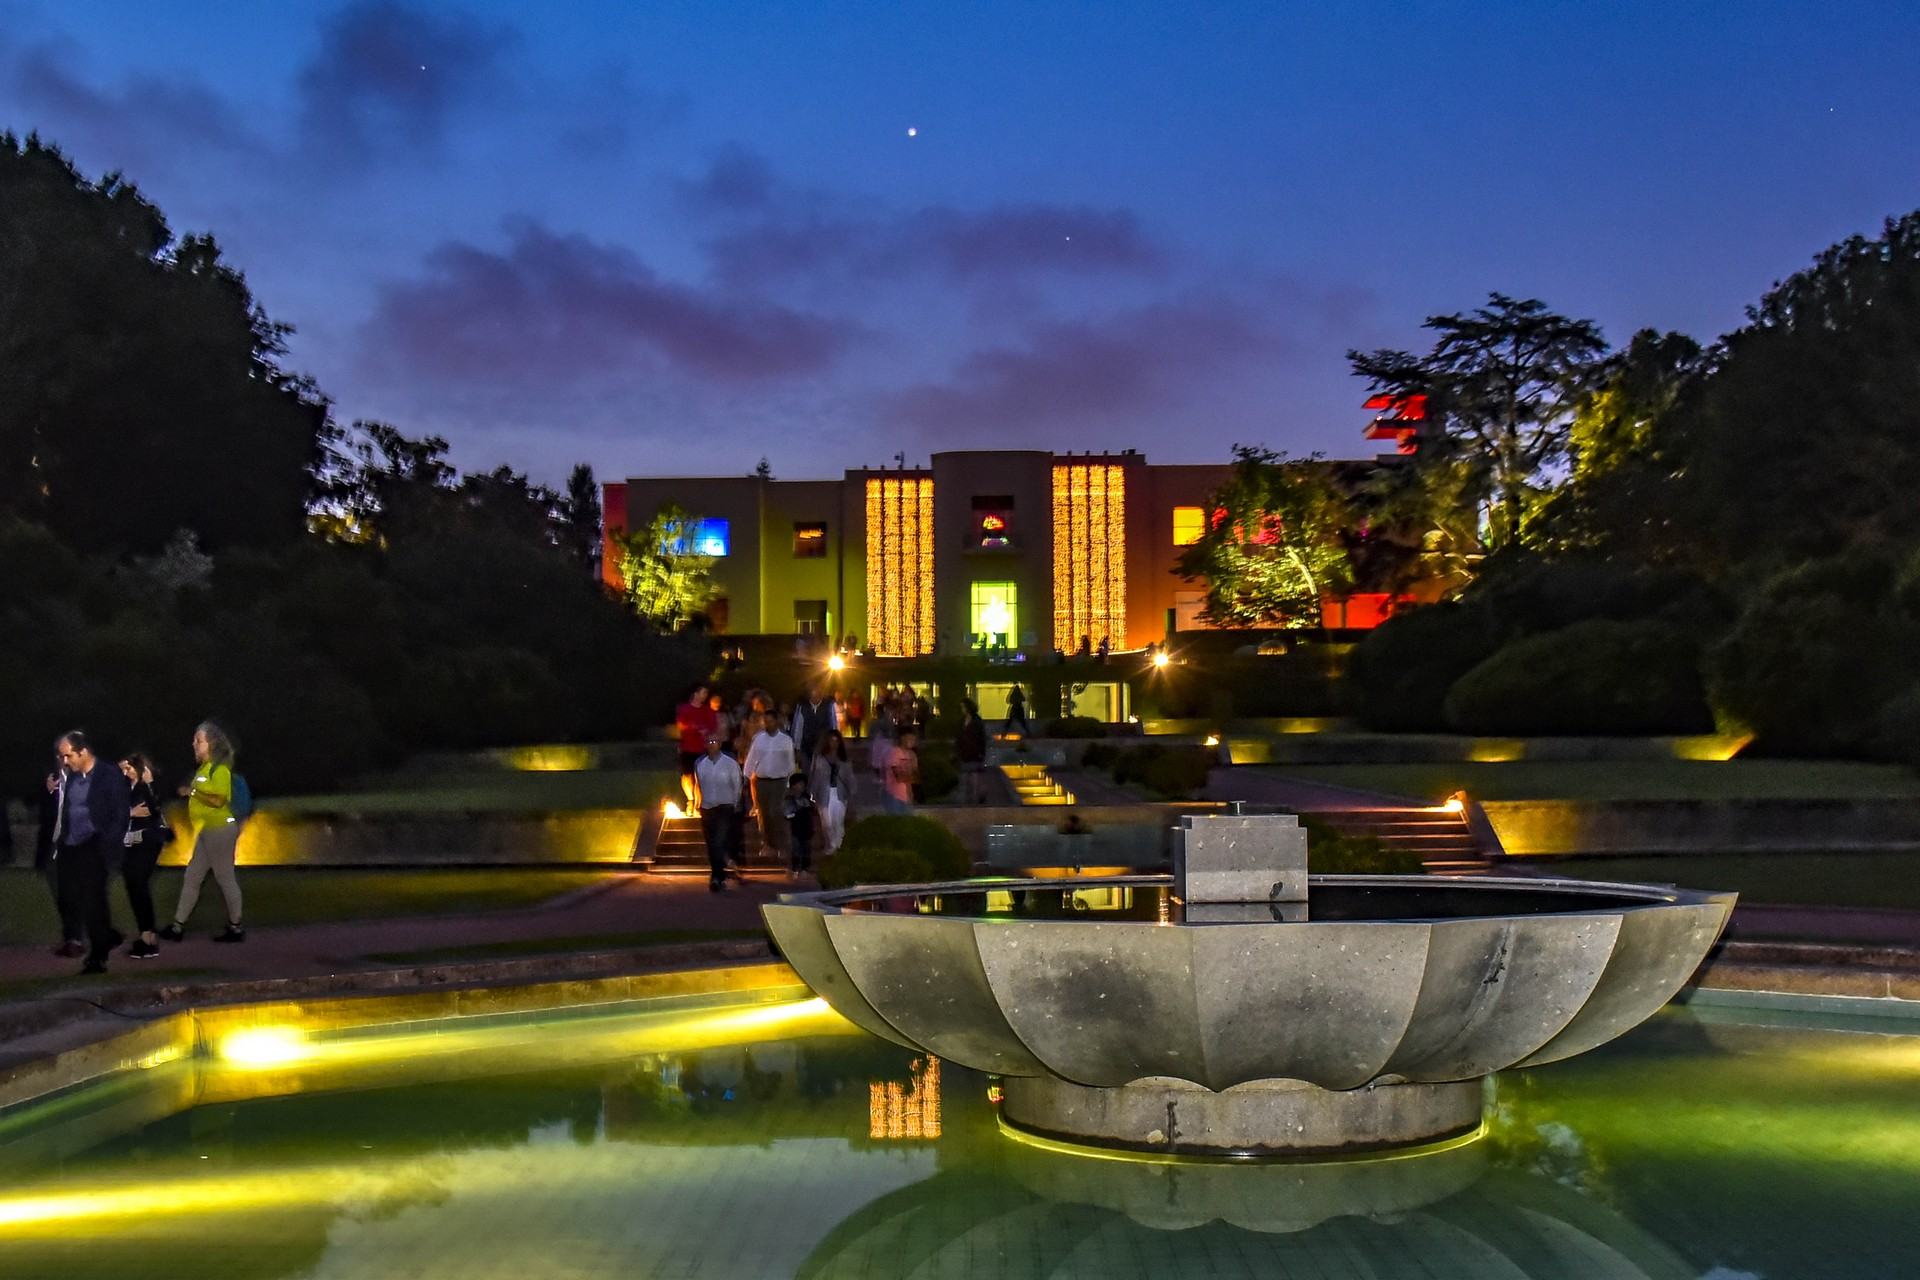 Serralves Foundation, The Master Place For Art To Be Discovered serralves foundation Serralves Foundation, The Master Place For Art To Be Discovered Serralves Foundation The Master Place For Art To Be Discovered 1